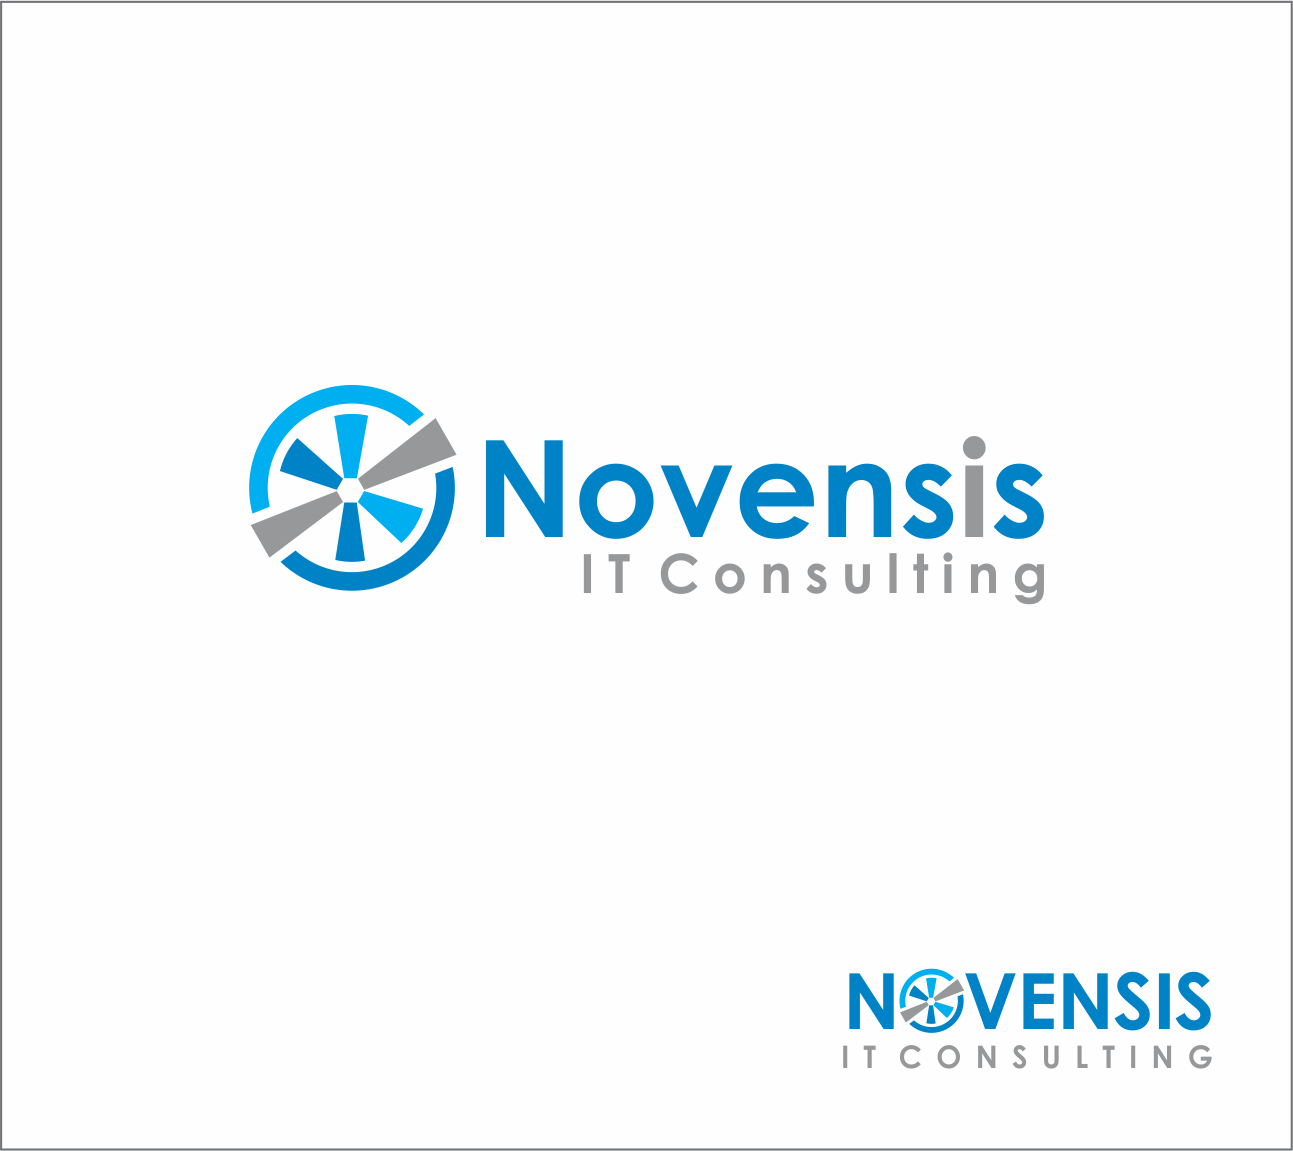 Logo Design by Armada Jamaluddin - Entry No. 159 in the Logo Design Contest Novensis Logo Design.